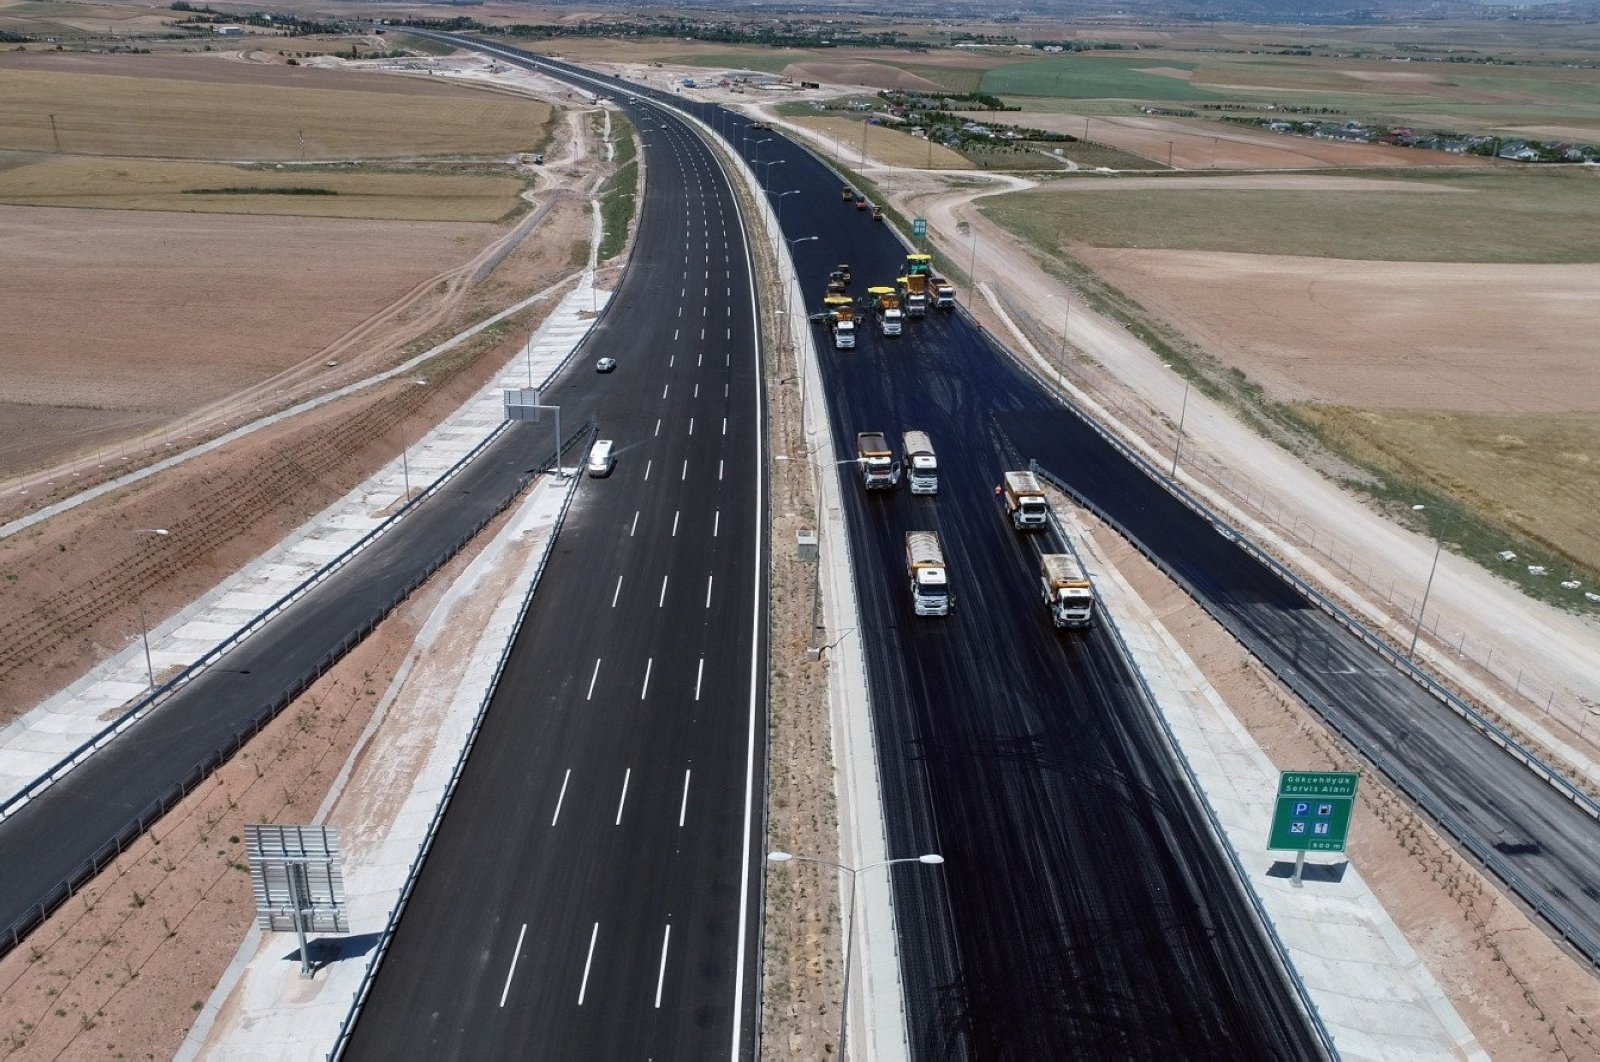 Trucks are seen on the highway that connects the capital Ankara and the central province of Niğde, Turkey, Sept. 4, 2020. (DHA Photo)